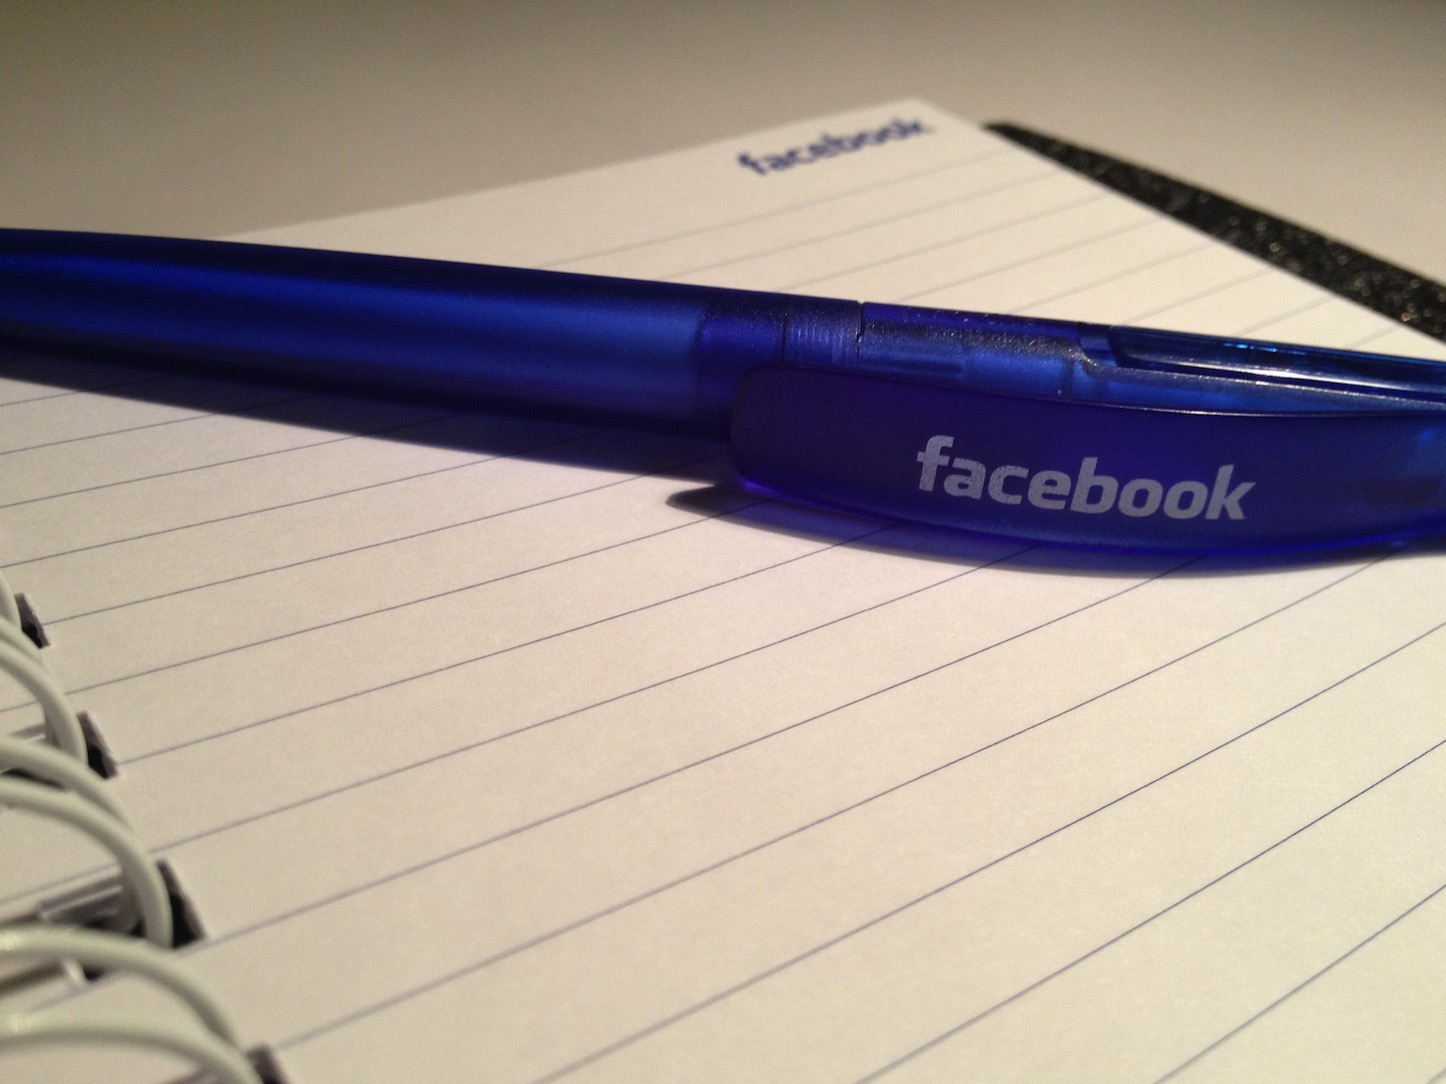 Facebook pen and notebook